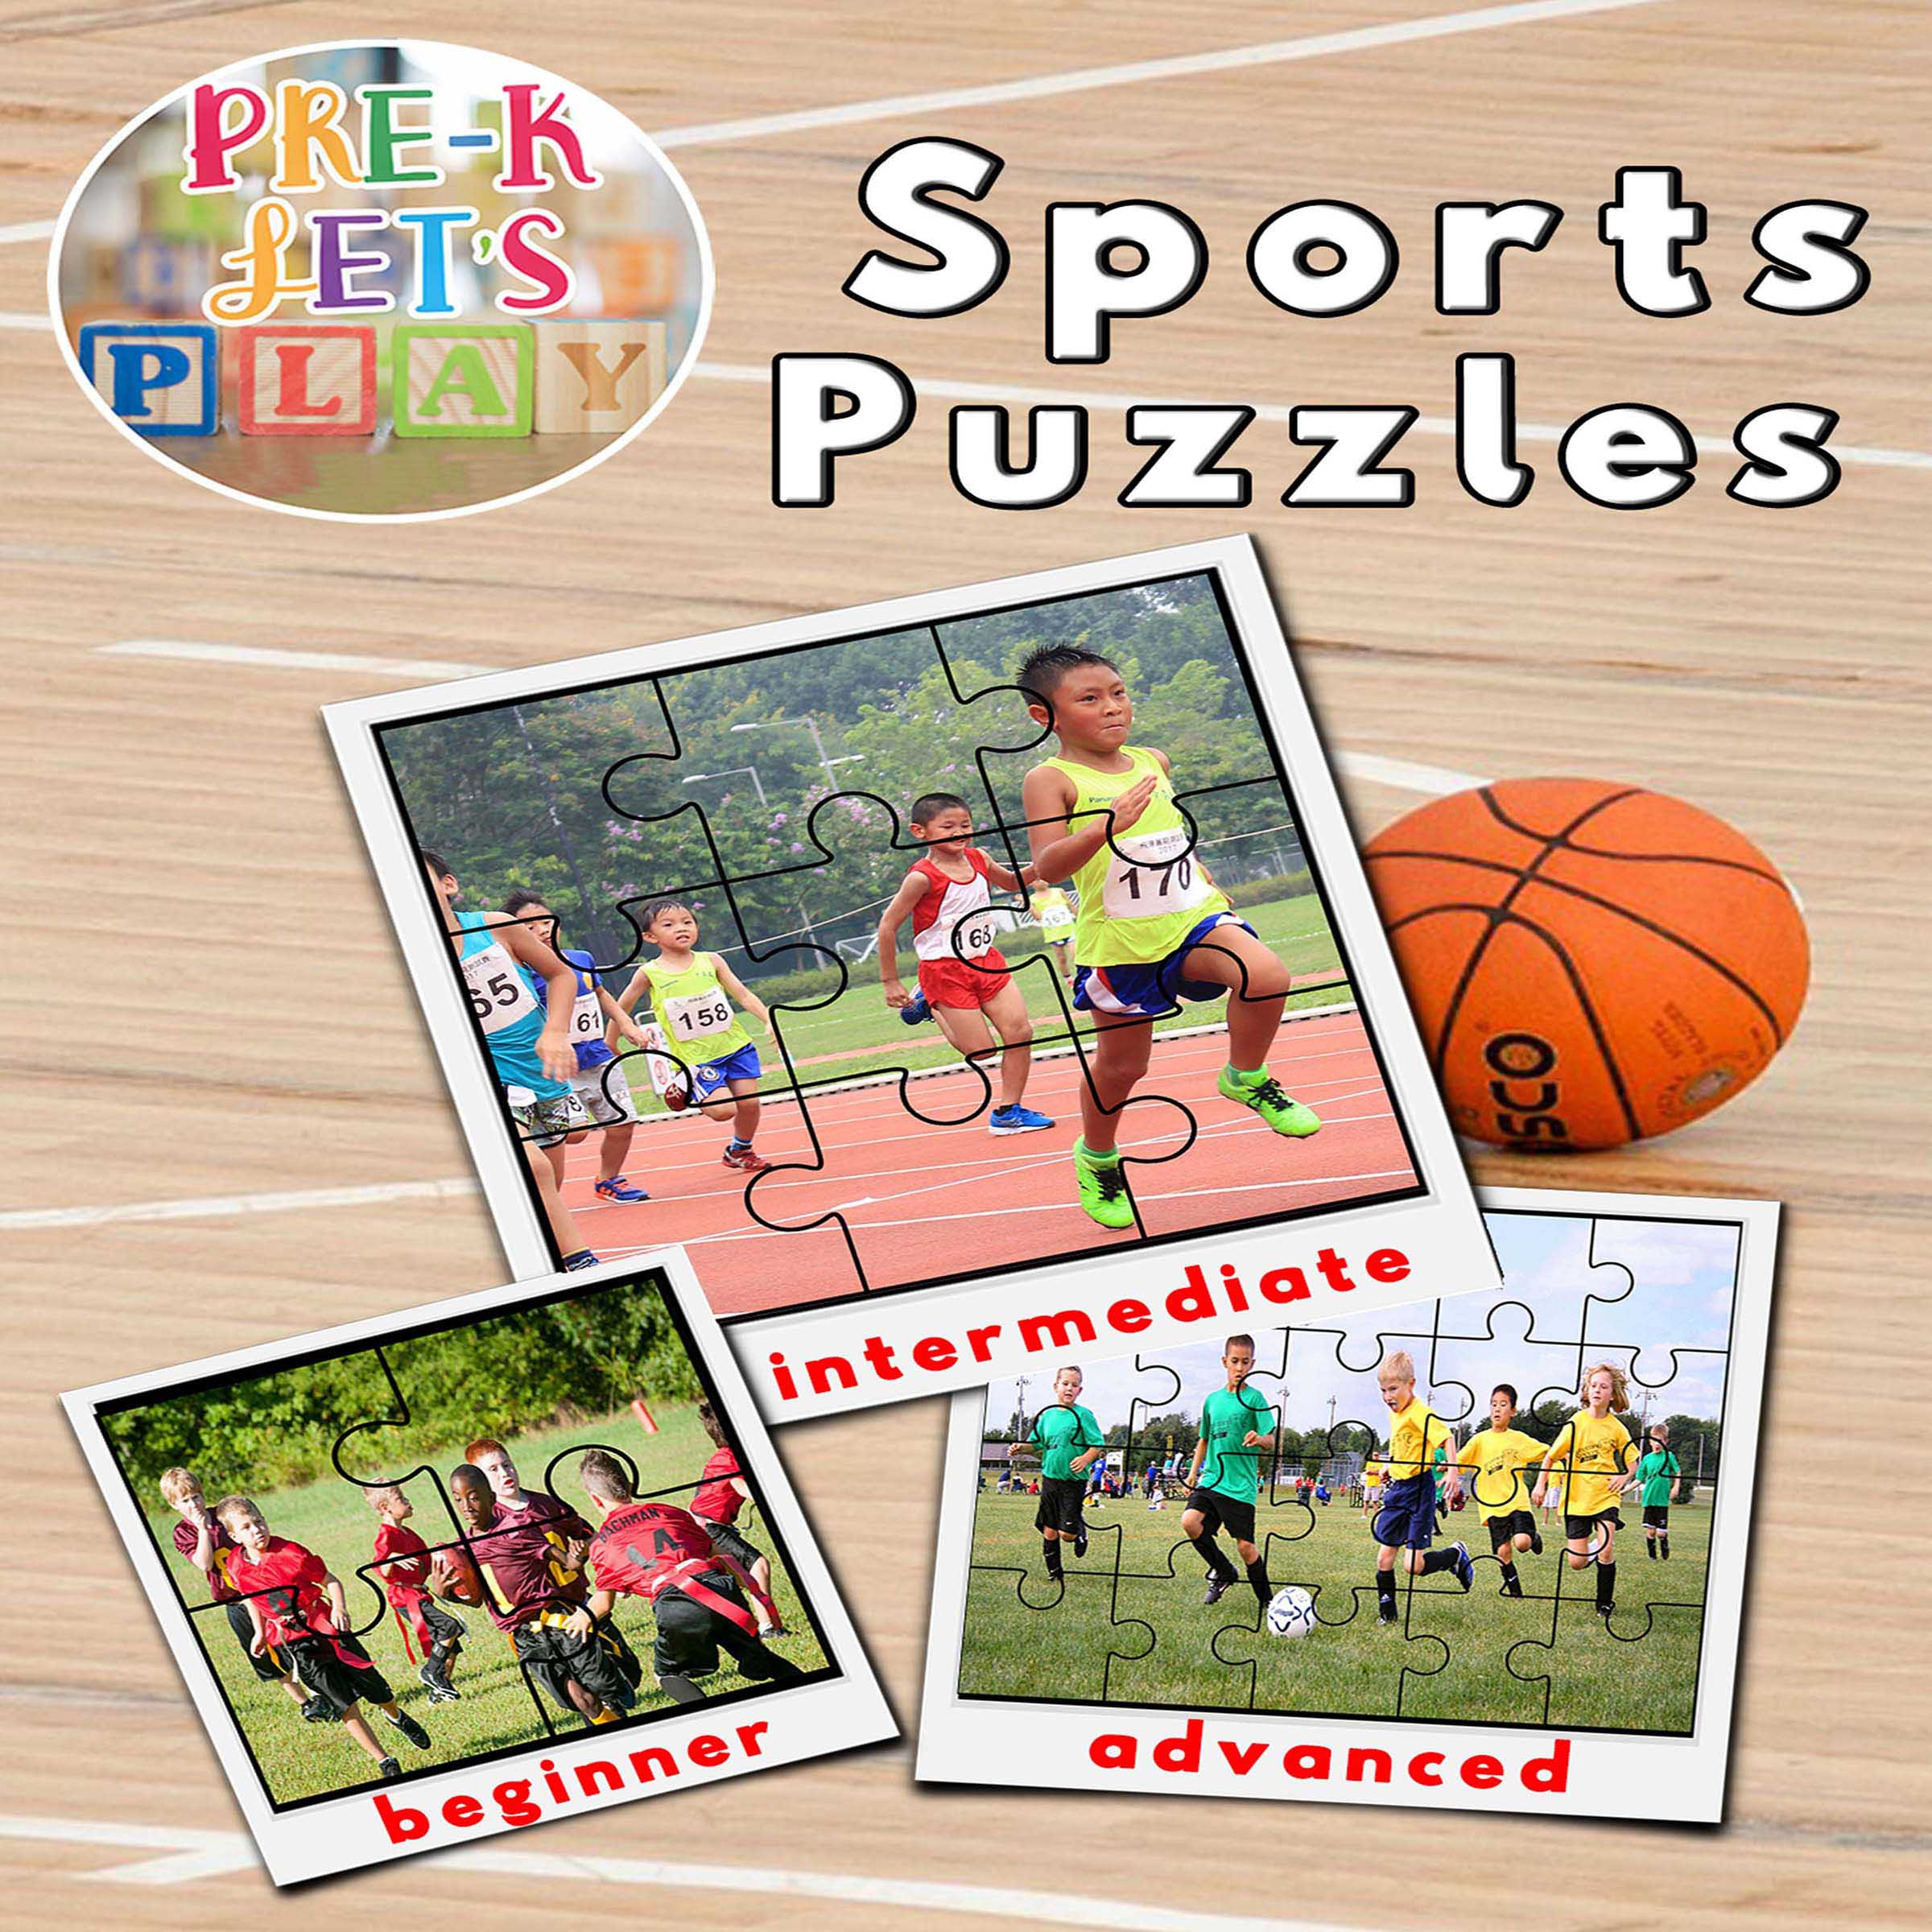 puzzle activities for preschool classrooms that focuses on the theme of sports.